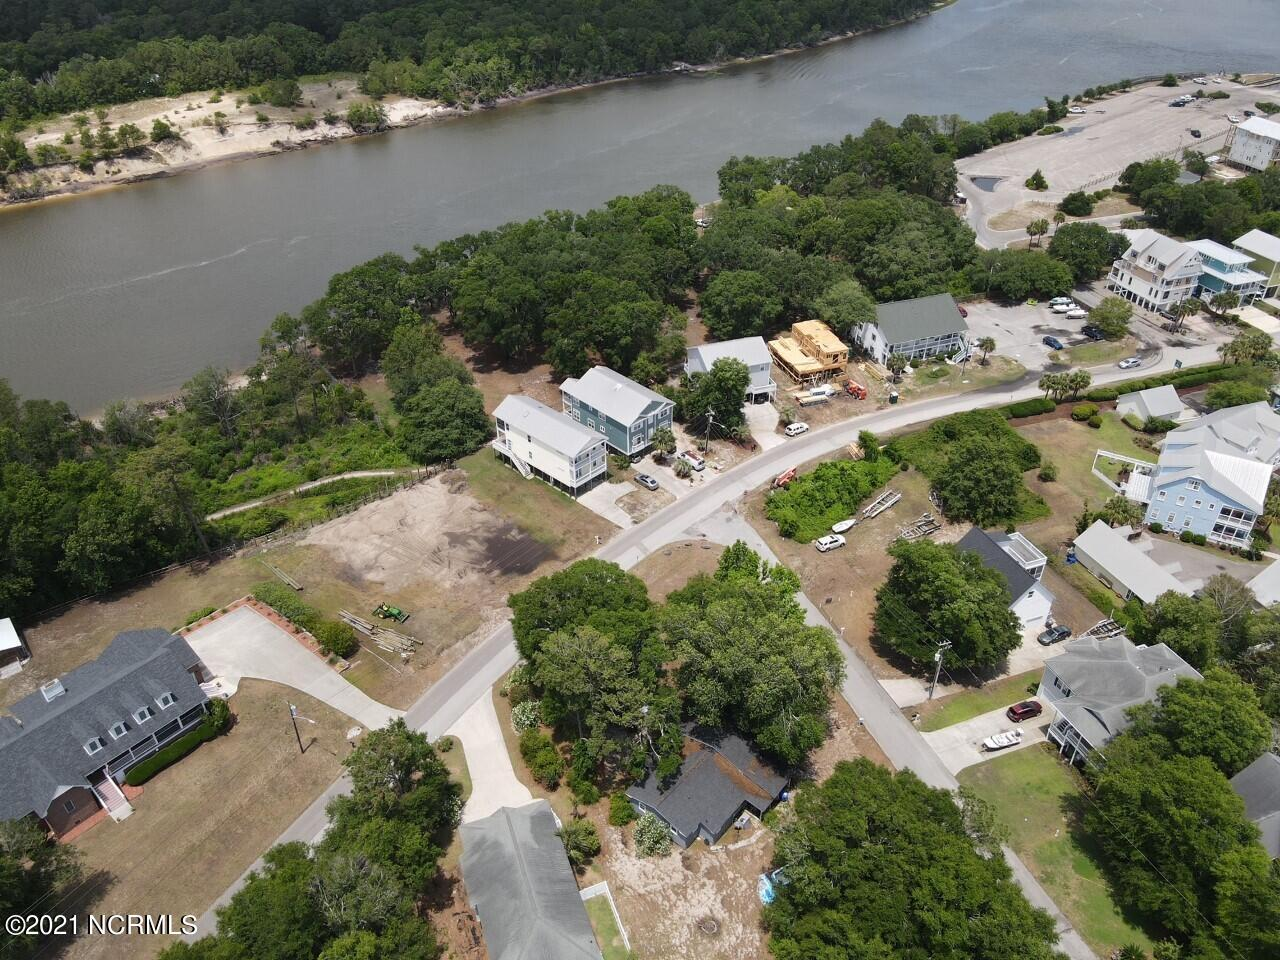 401 Spencer Farlow Drive, Carolina Beach, North Carolina 28428, 3 Bedrooms Bedrooms, 7 Rooms Rooms,2 BathroomsBathrooms,Single family residence,For sale,Spencer Farlow,100276310